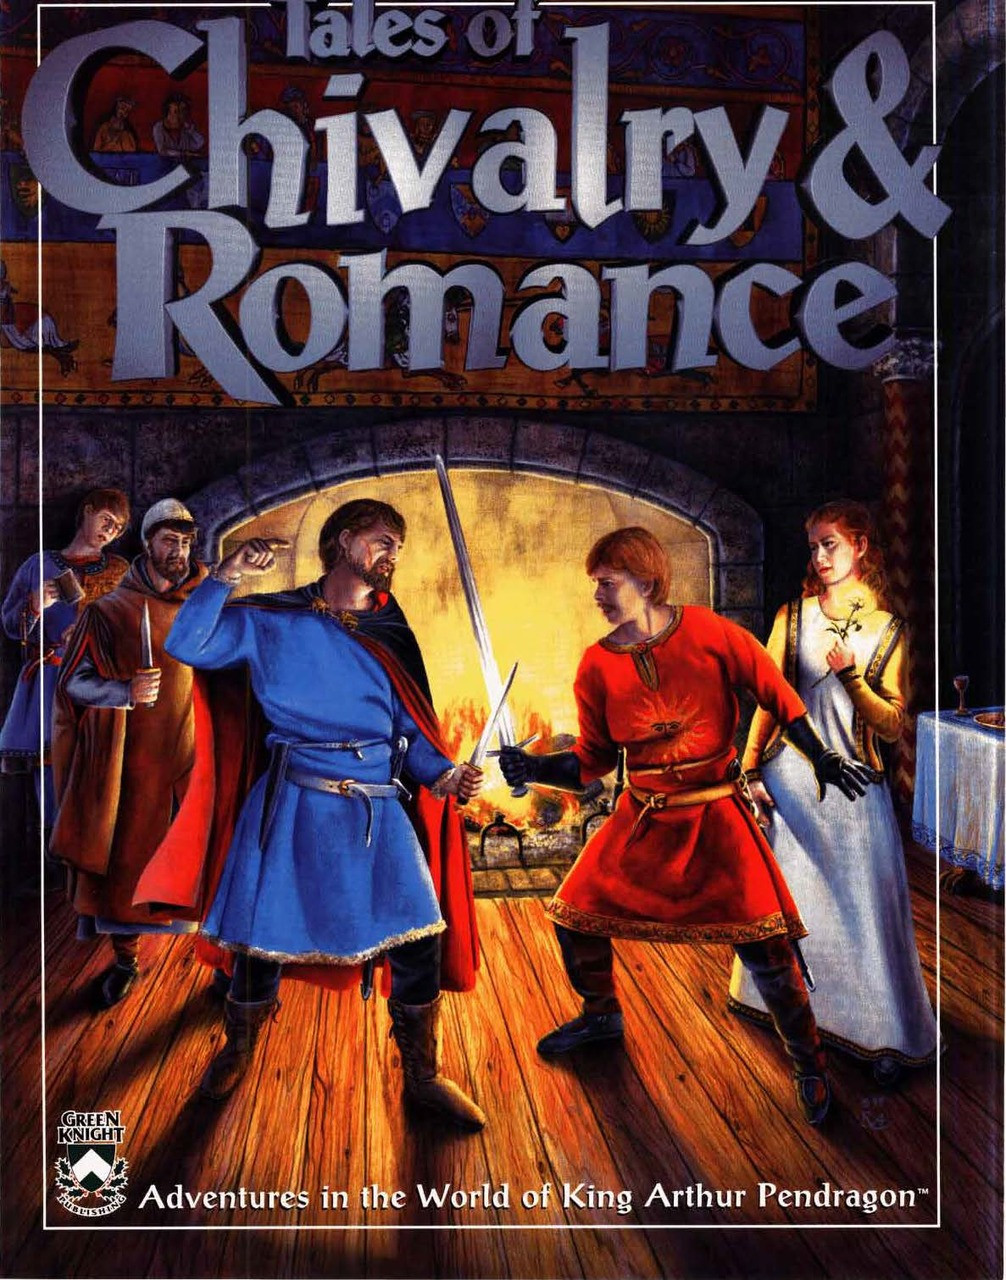 Tales of Chivalry and Romance - PDF - Chaosium Inc.